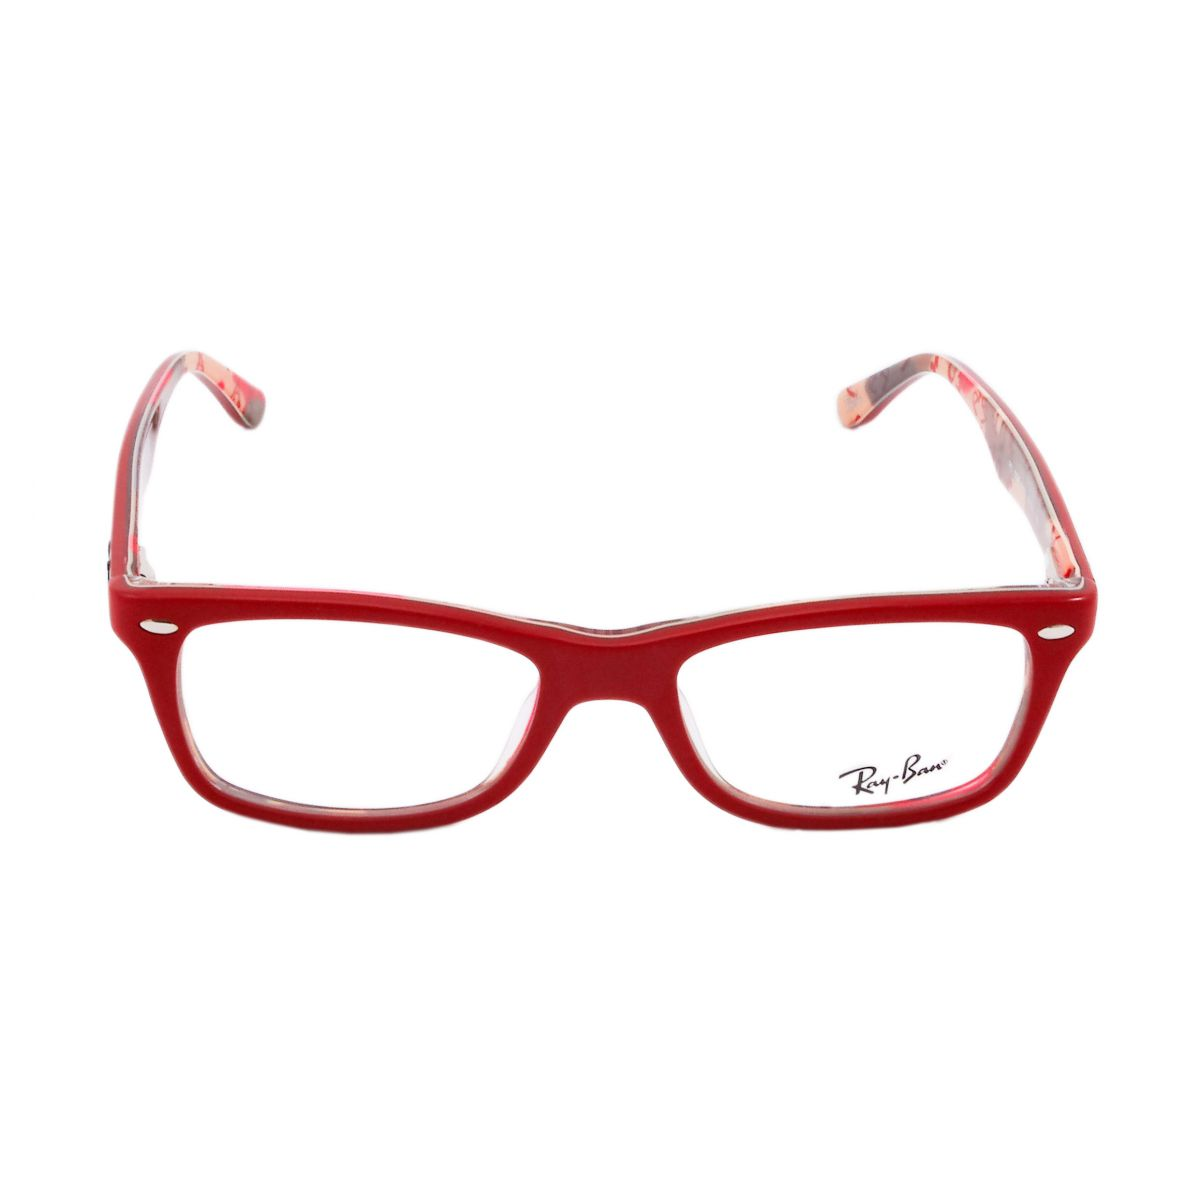 5e7ae192c083c Óculos De Grau Ray Ban Wayfarer RB5228 5406 Tam.53. Image description Image  description ...